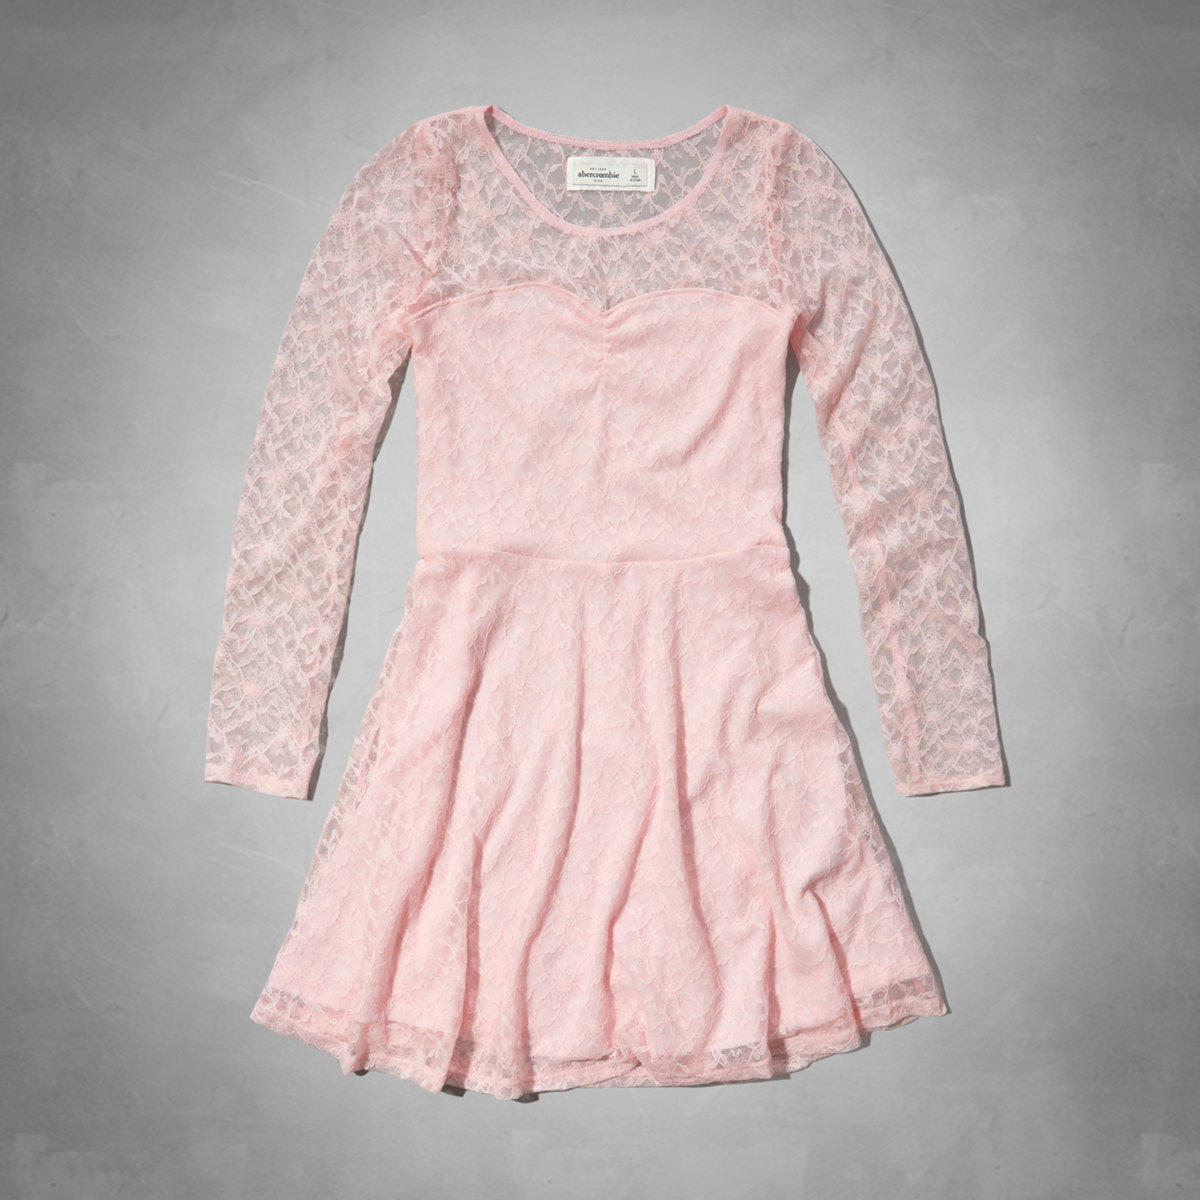 long sleeve lace skater dress from Abercrombie Kids 478aa7866